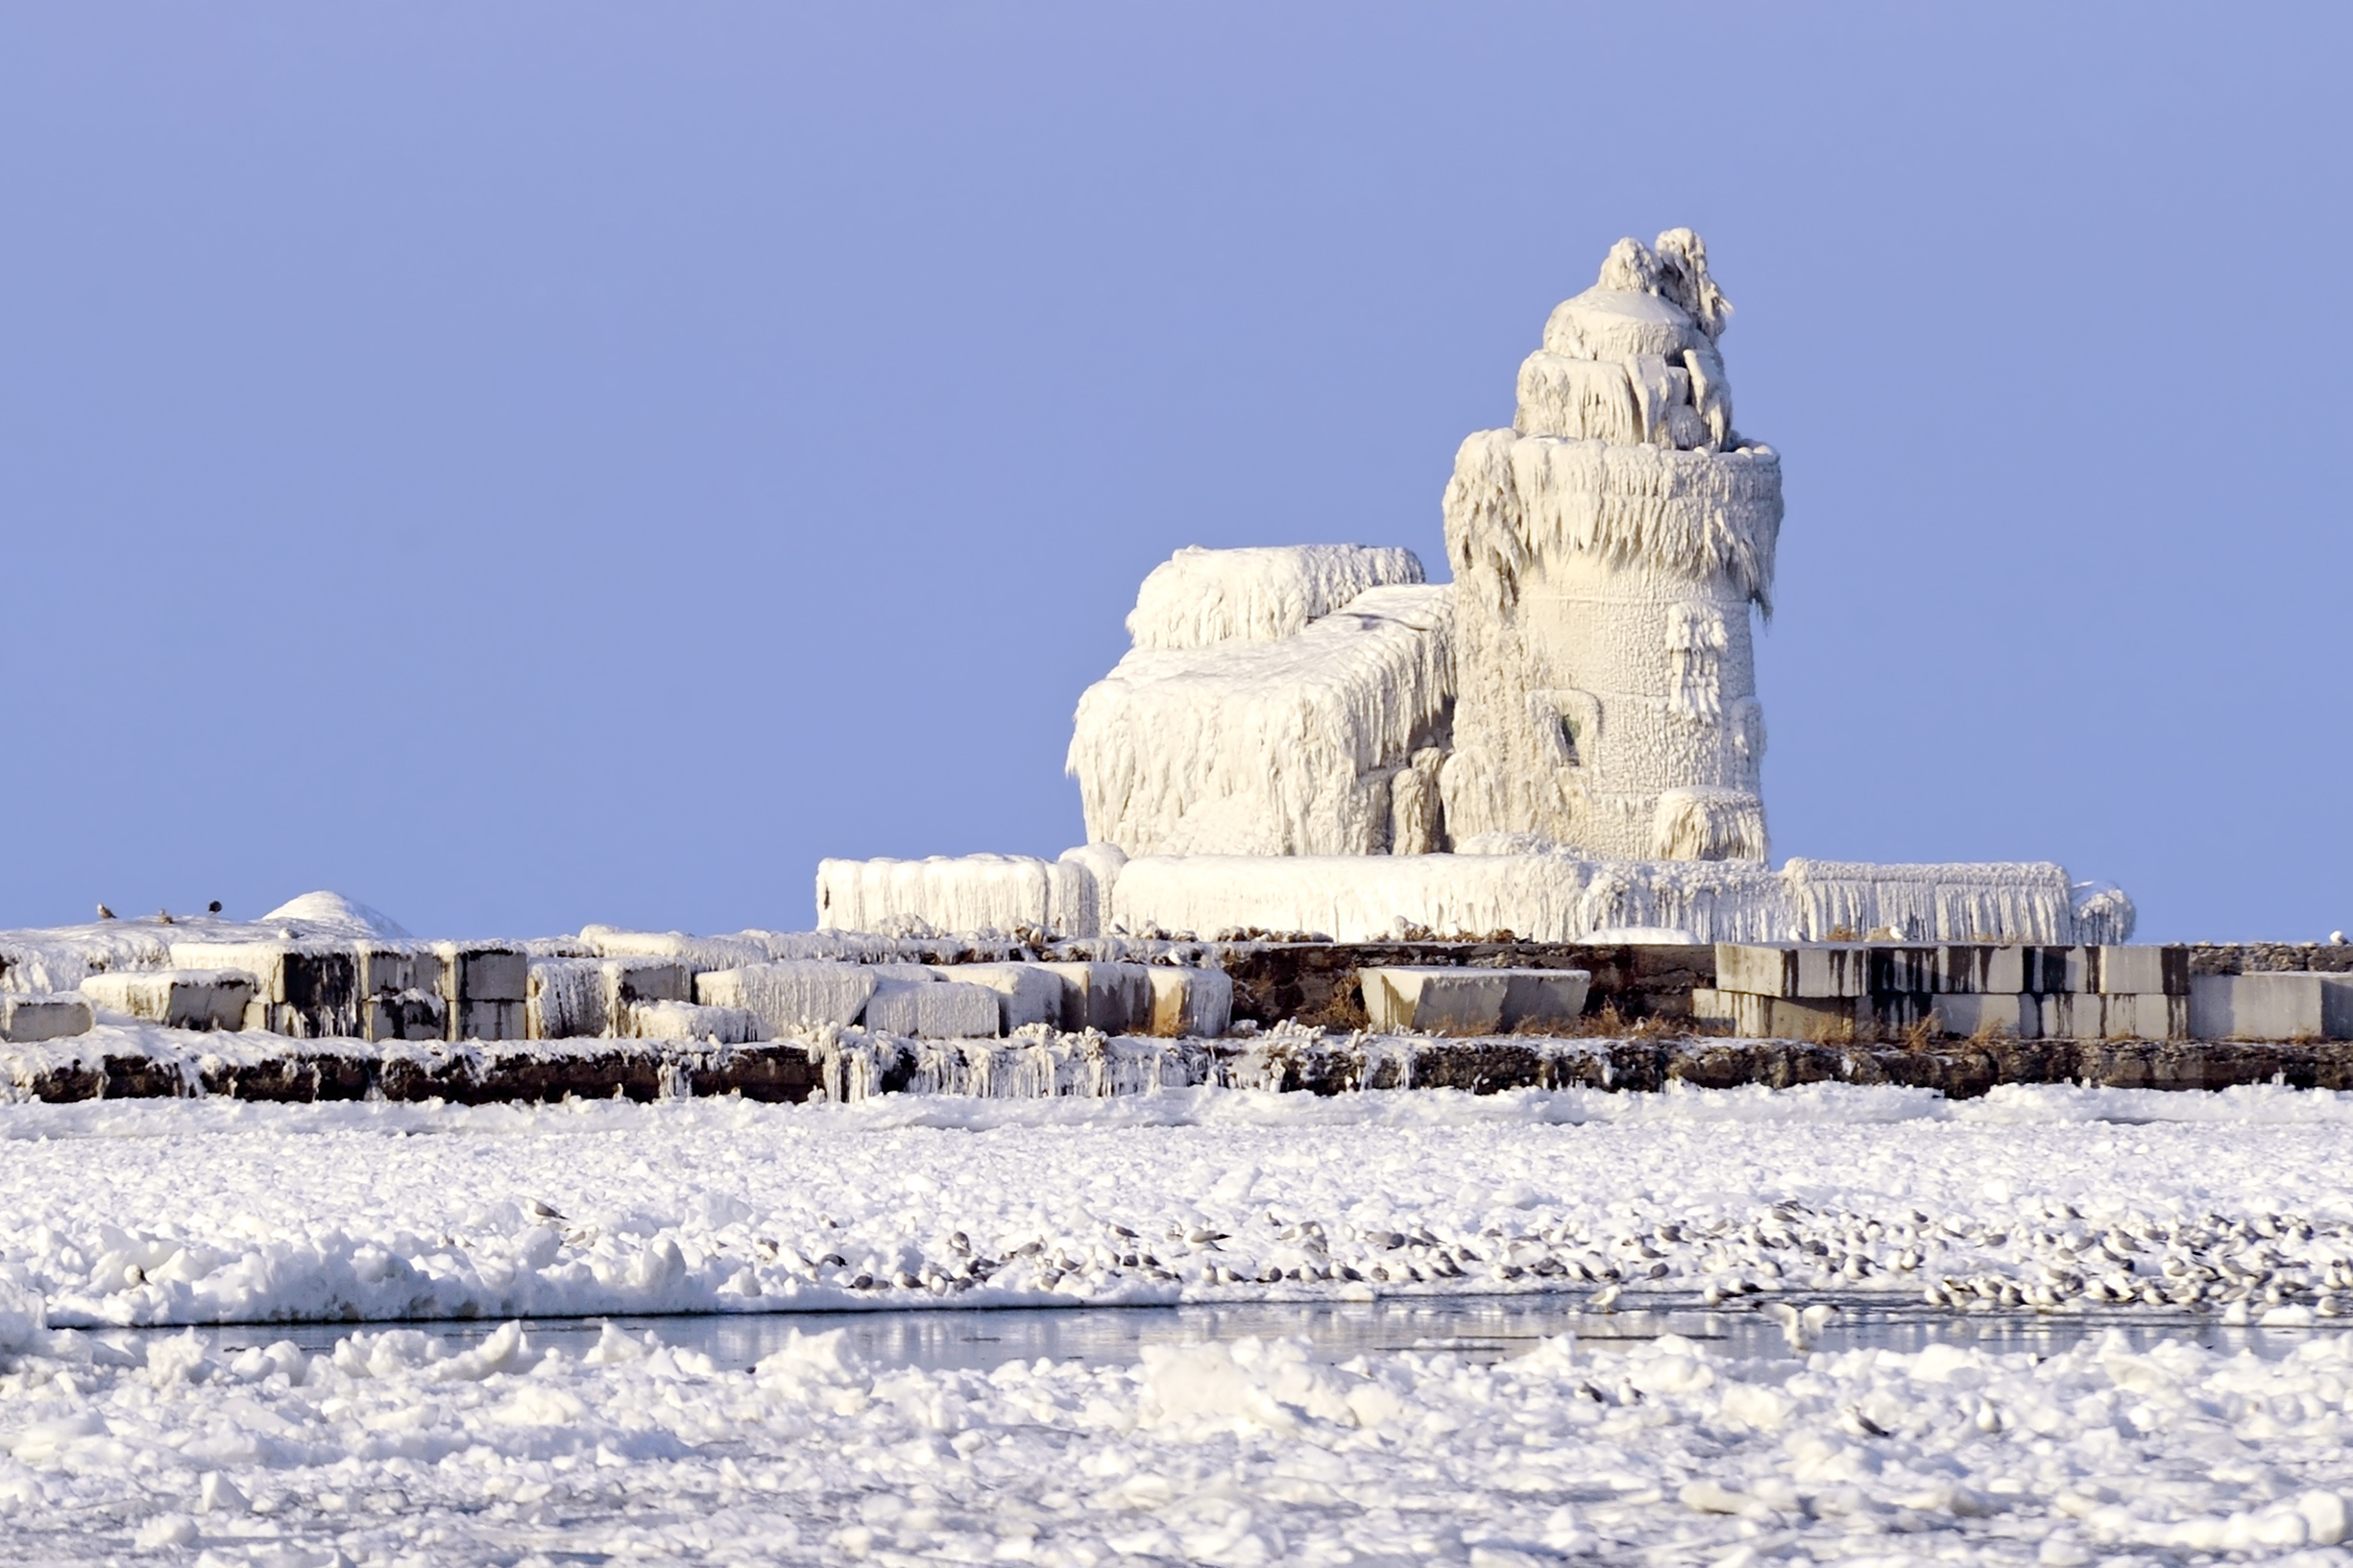 Caption: The Cleveland Harbor West Pierhead Lighthouse covered in ice, Credit: Amy Nichole Harris/Shutterstock